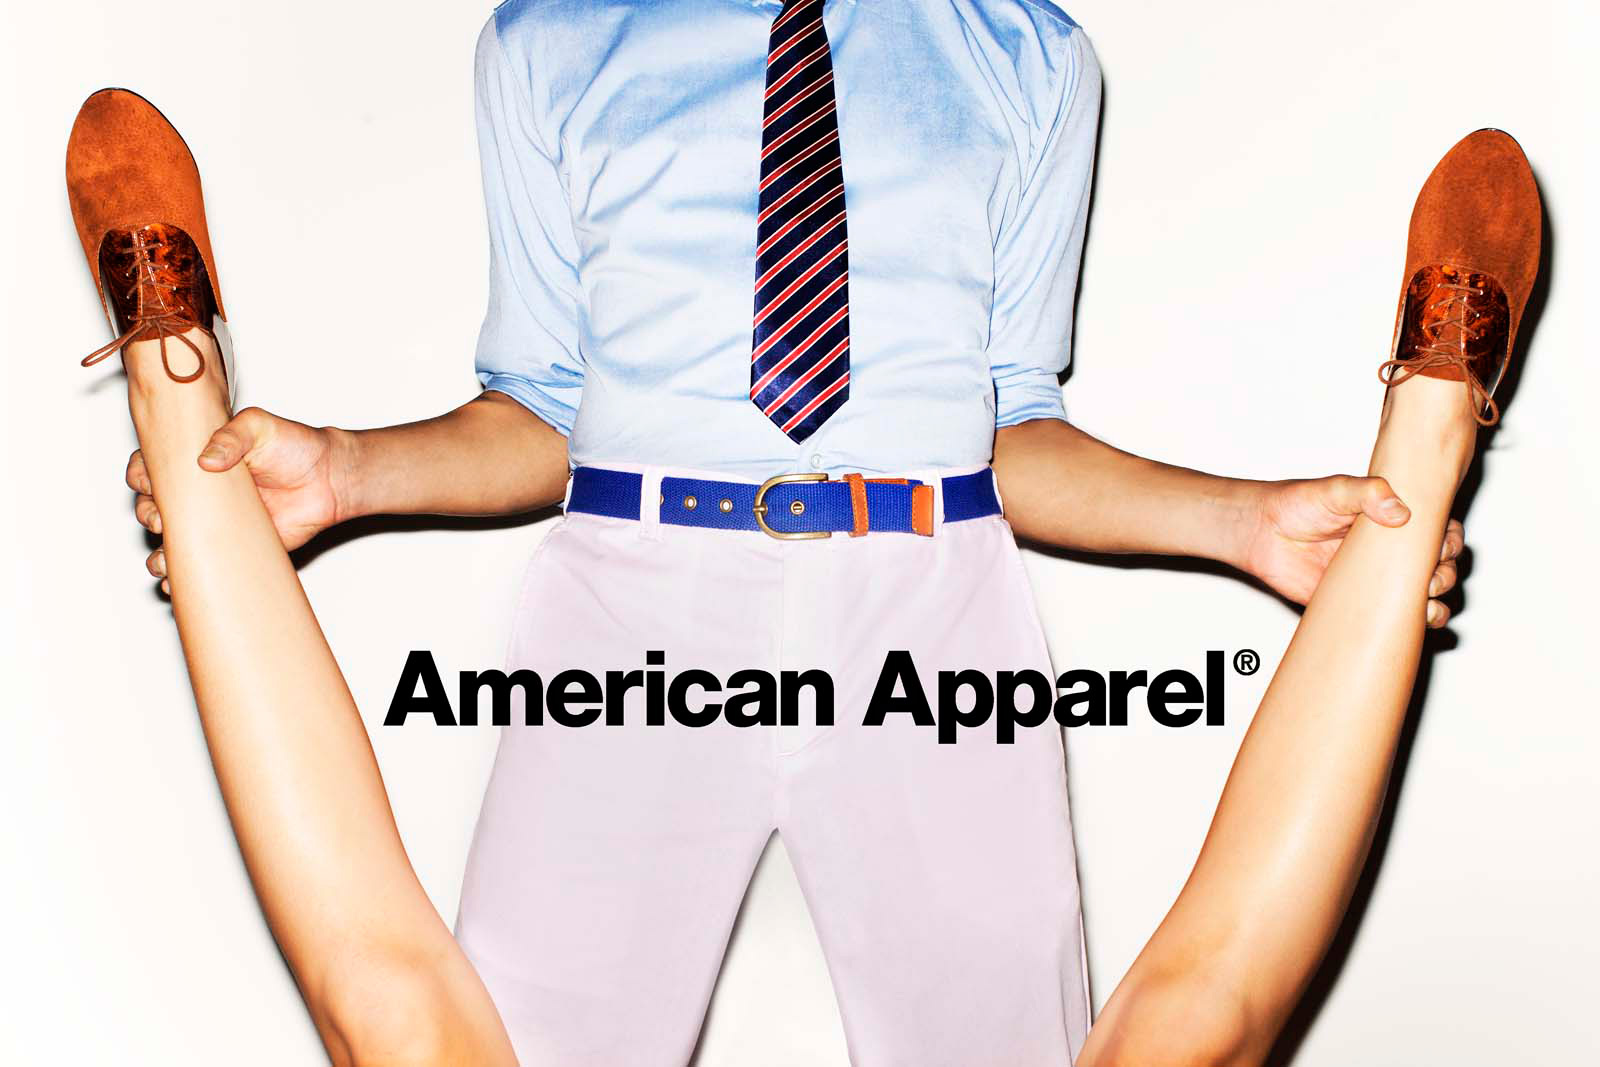 Busty american apparel pic 522